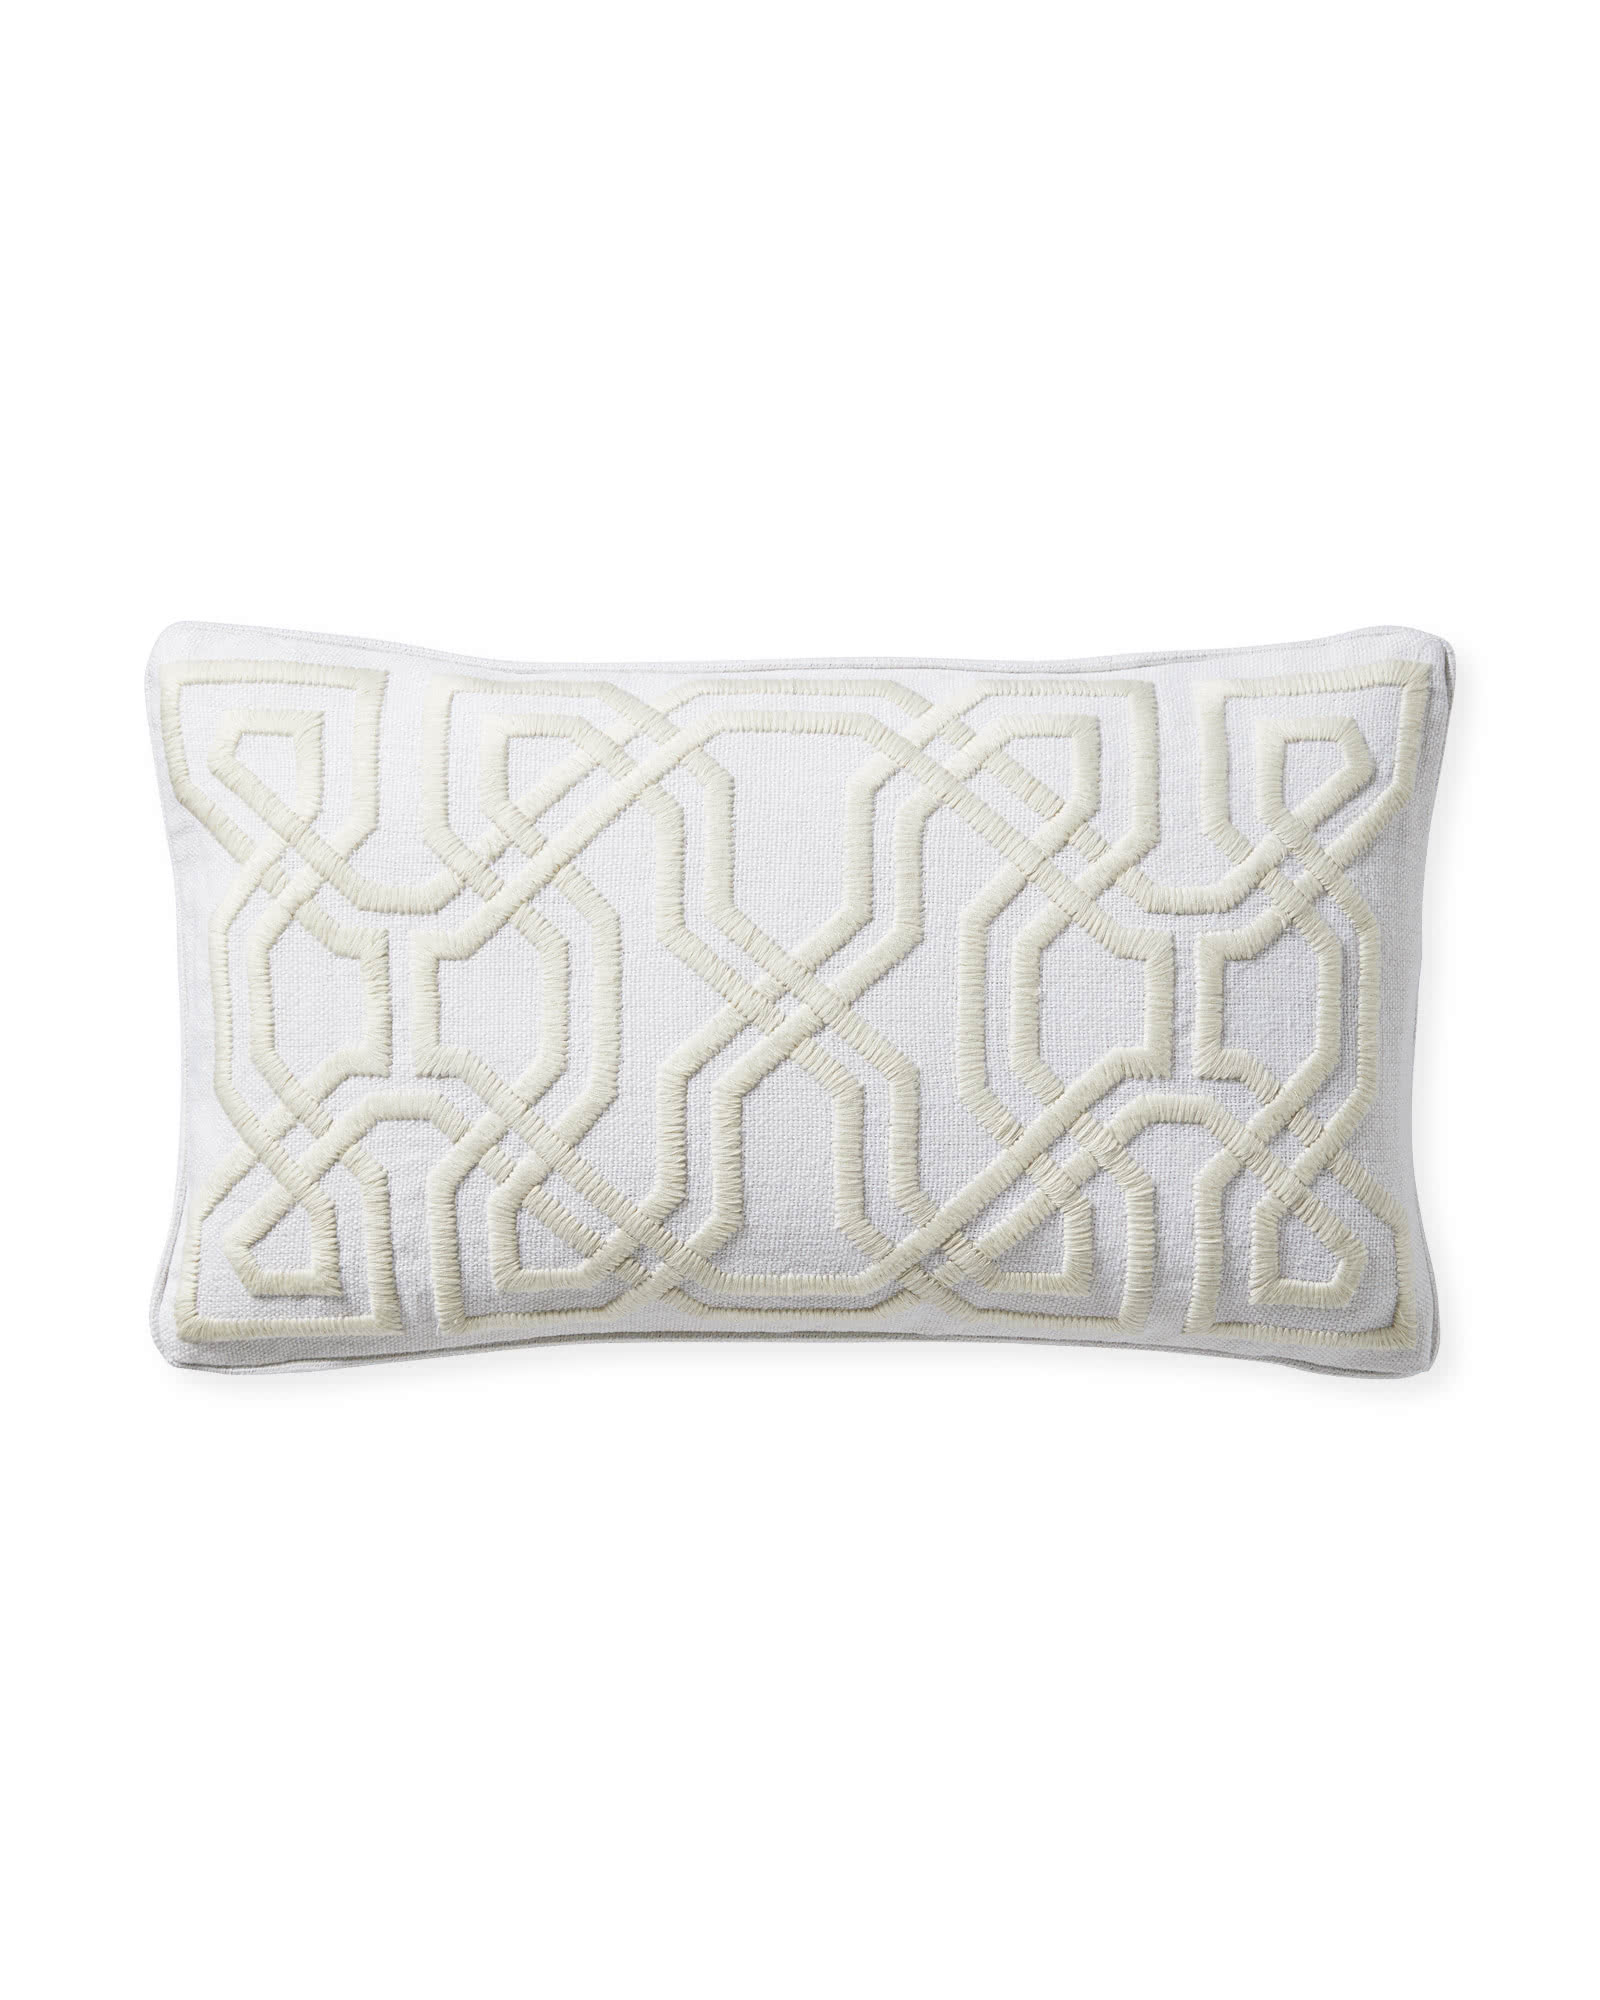 Jetty Pillow Cover, Ivory